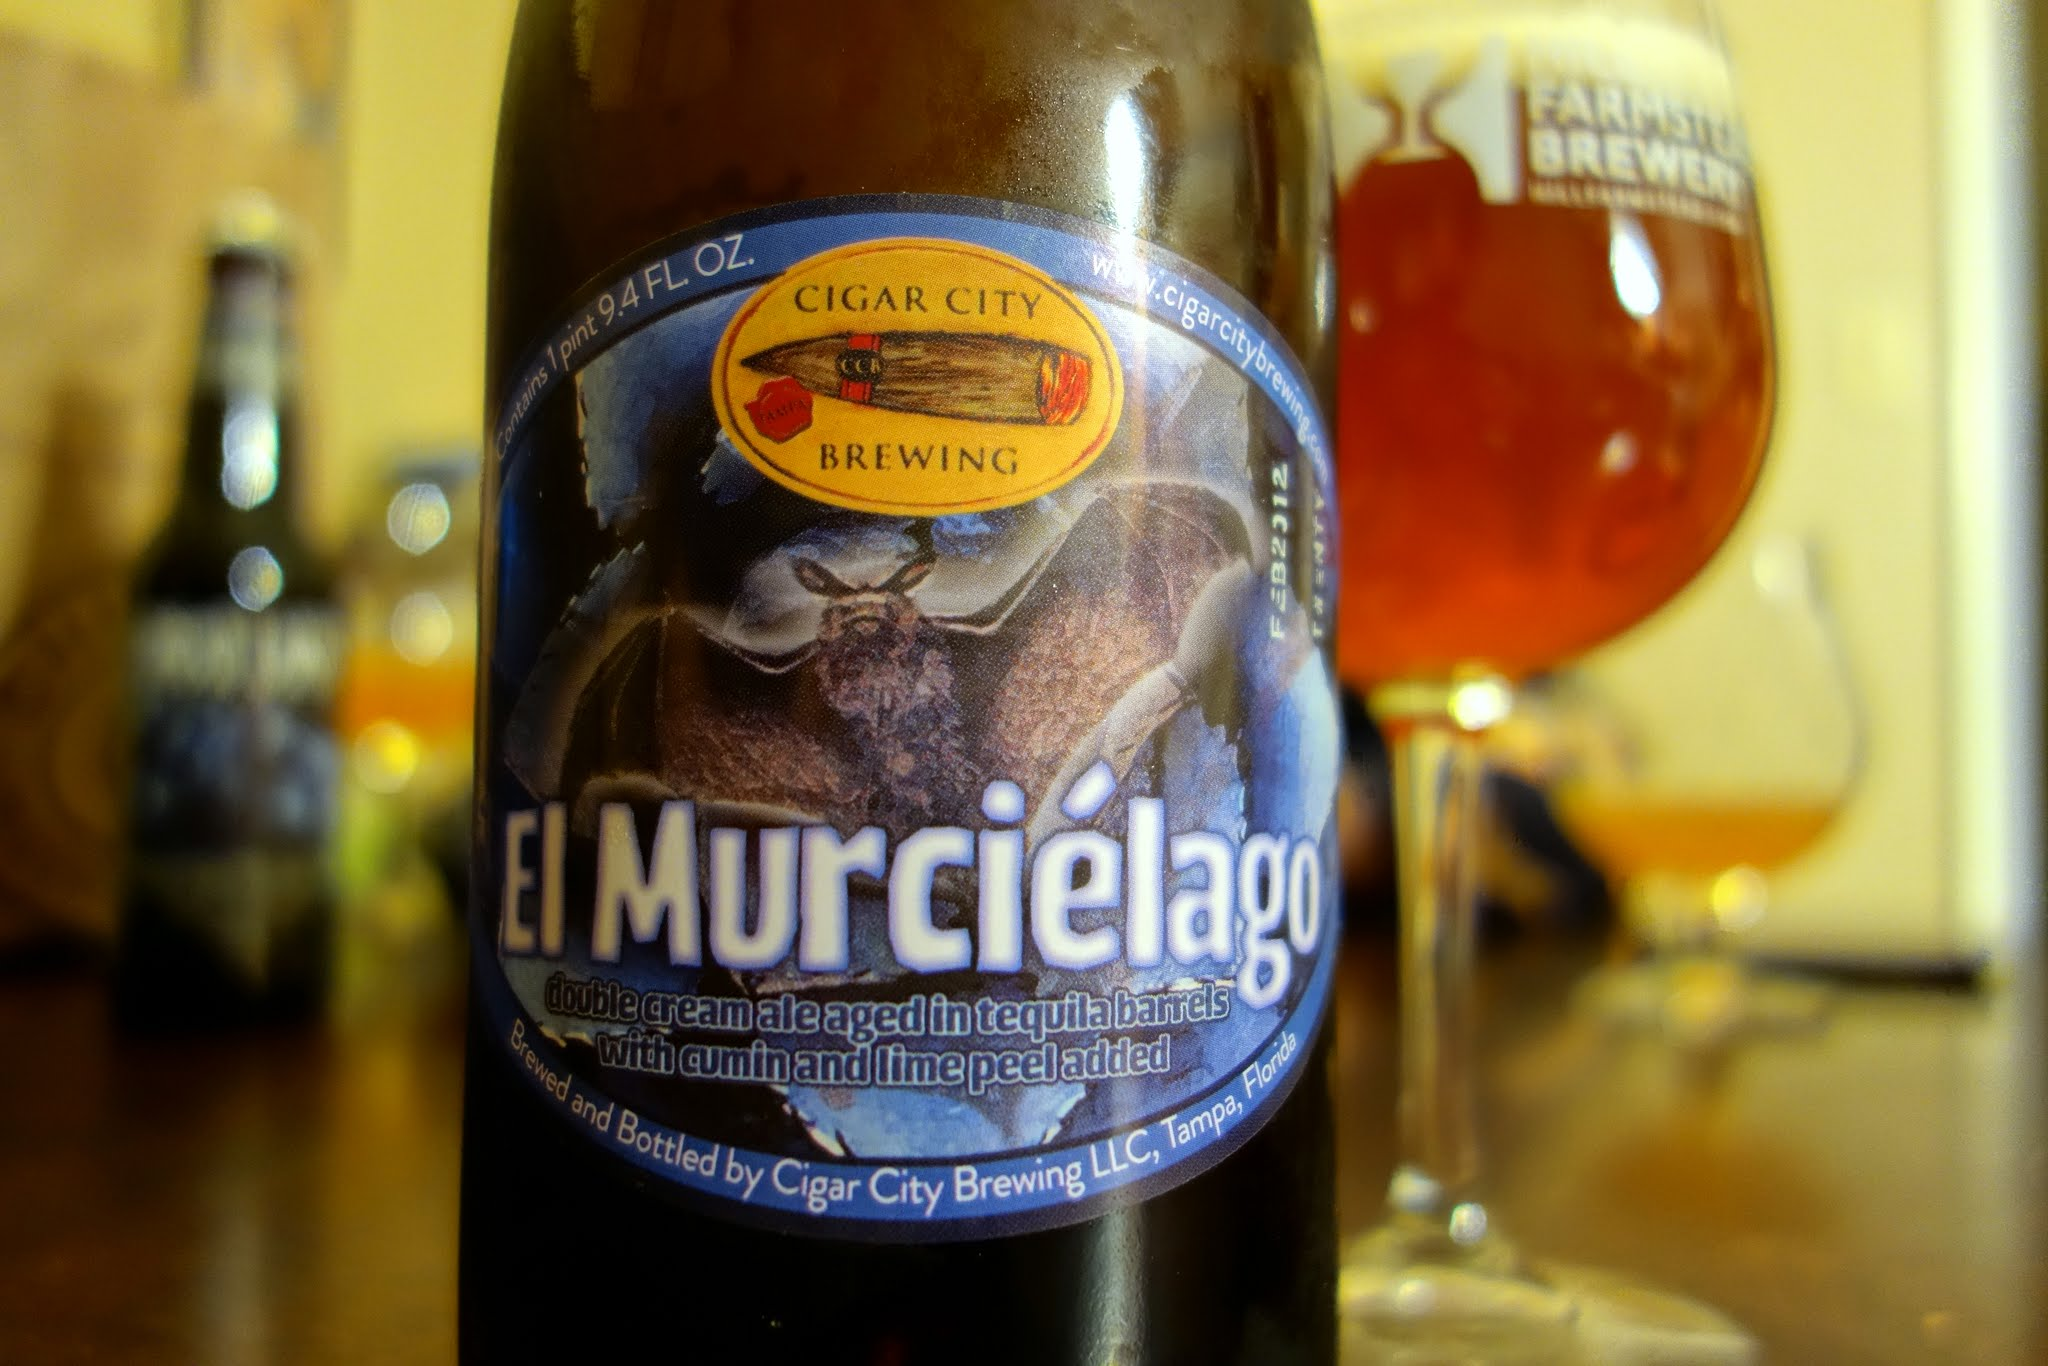 Cigar City El Murciélago